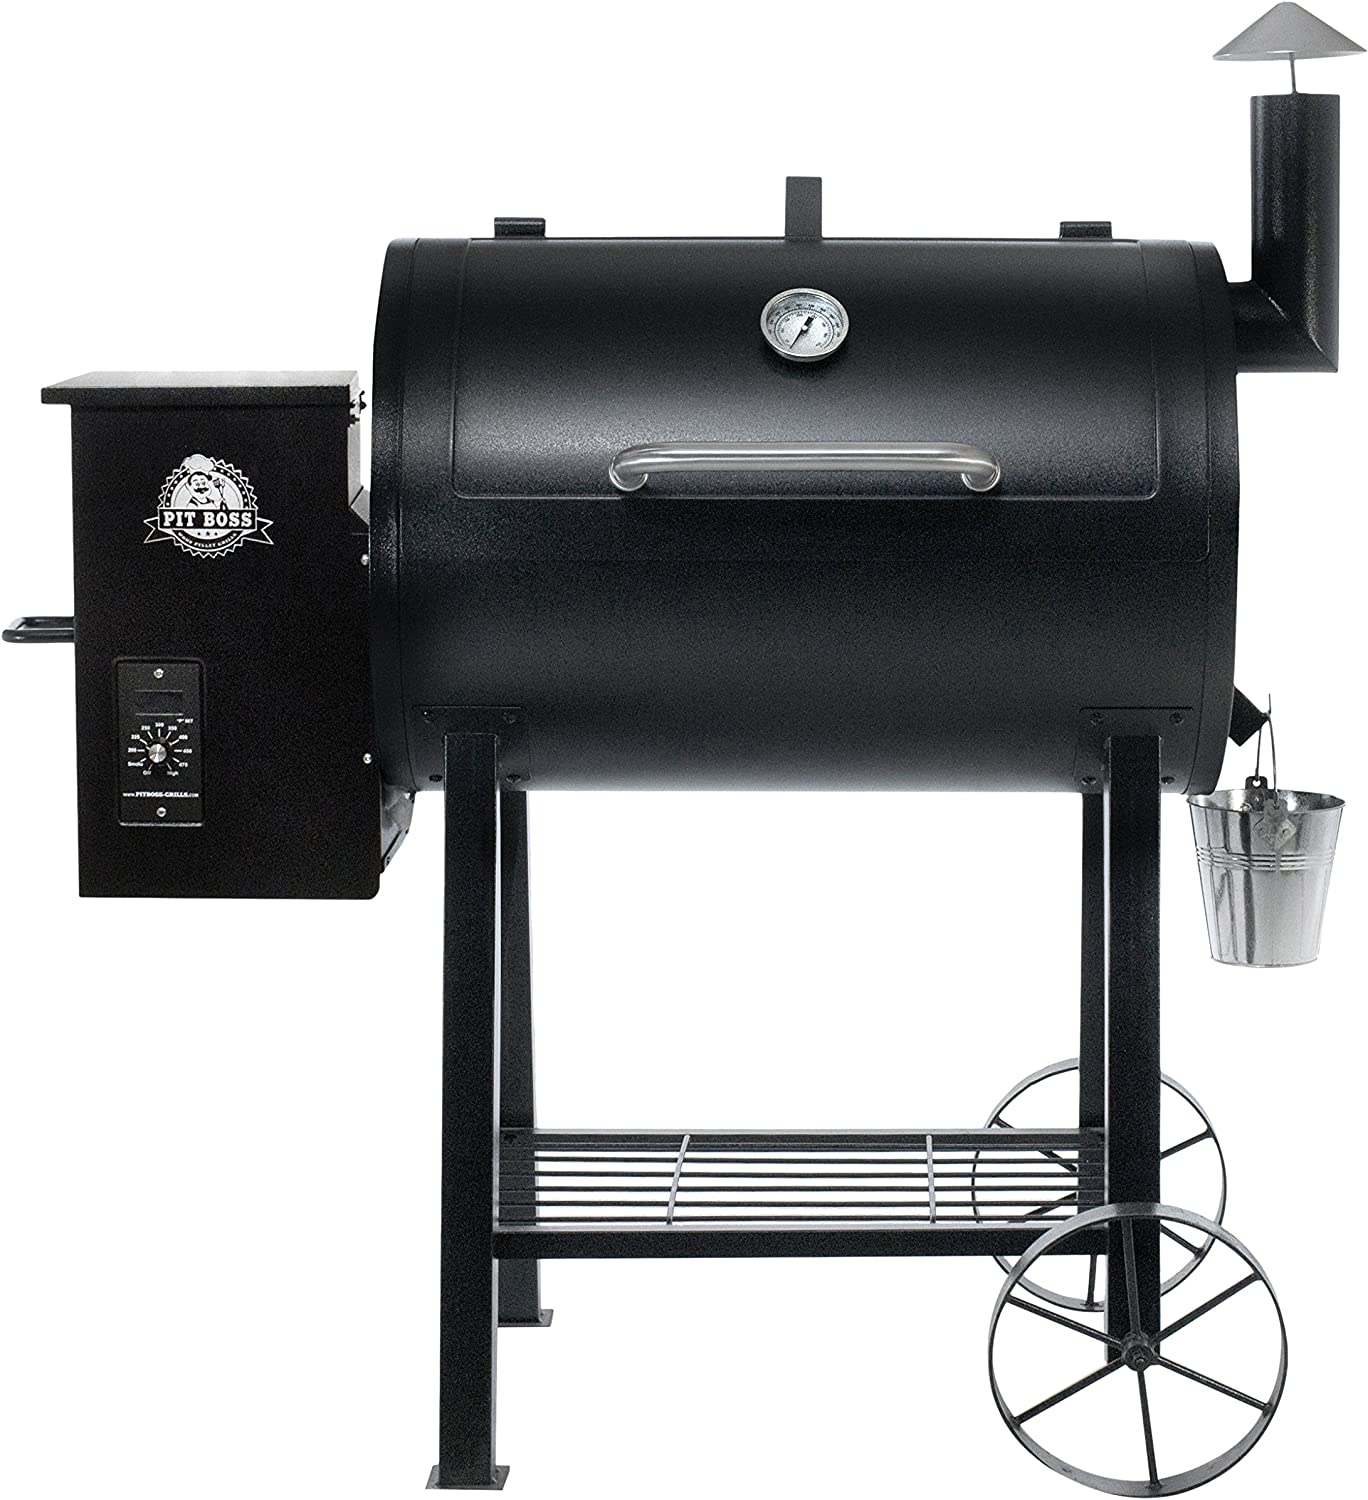 Pit Boss Pb820fb Wood Fired Pellet Grill W Flame Broiler Bbq Black 122x68x127 75 Cm Amazon Co Uk Garden Outdoors